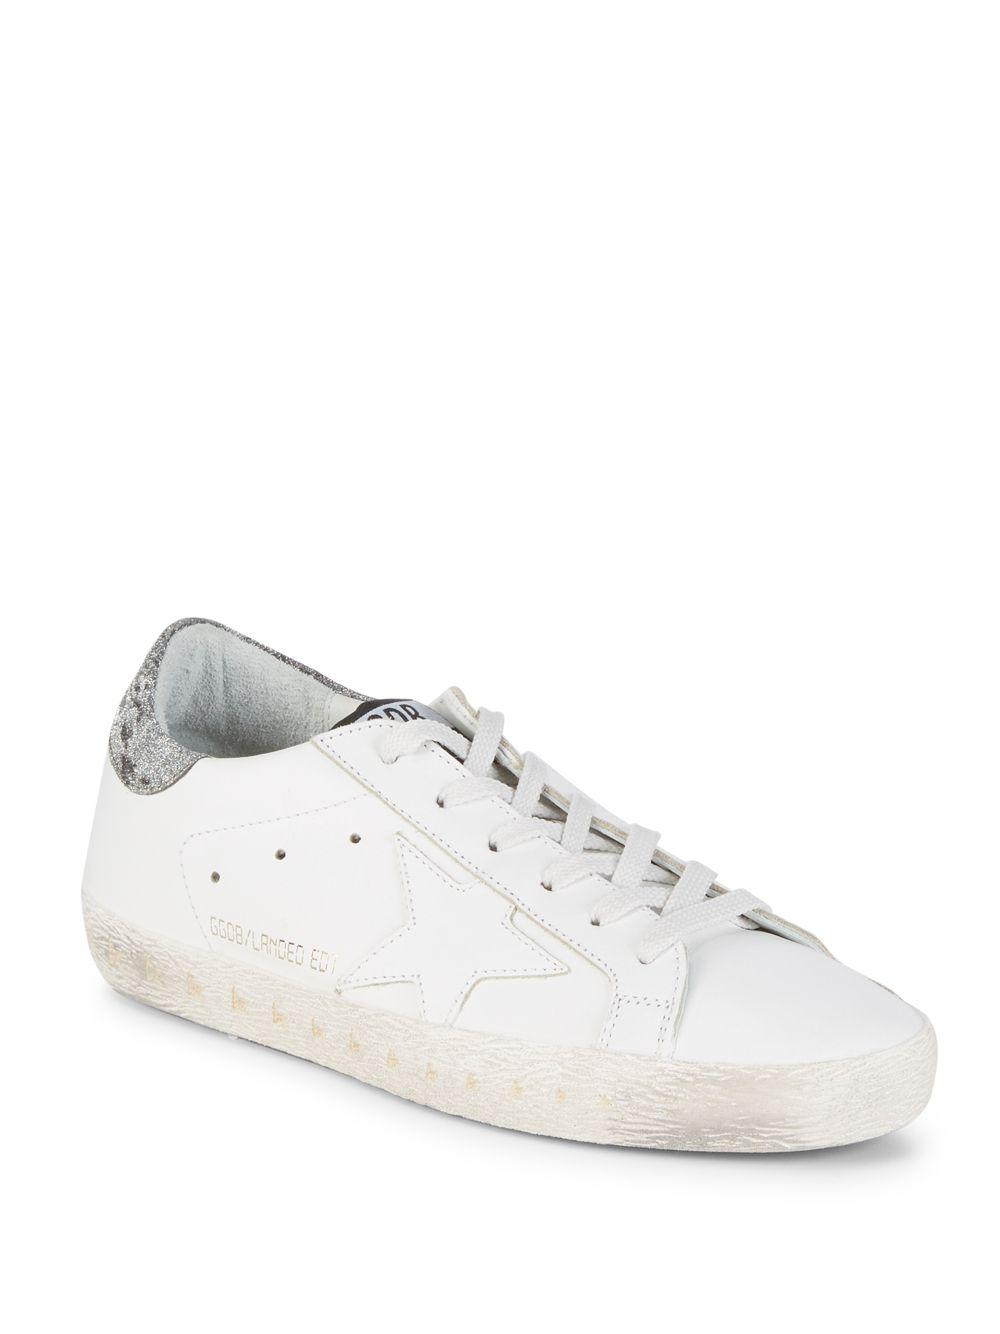 Sale - Old Superstar Velcro Leather Sneakers - Golden Goose Deluxe Brand Golden Goose VH8mzL